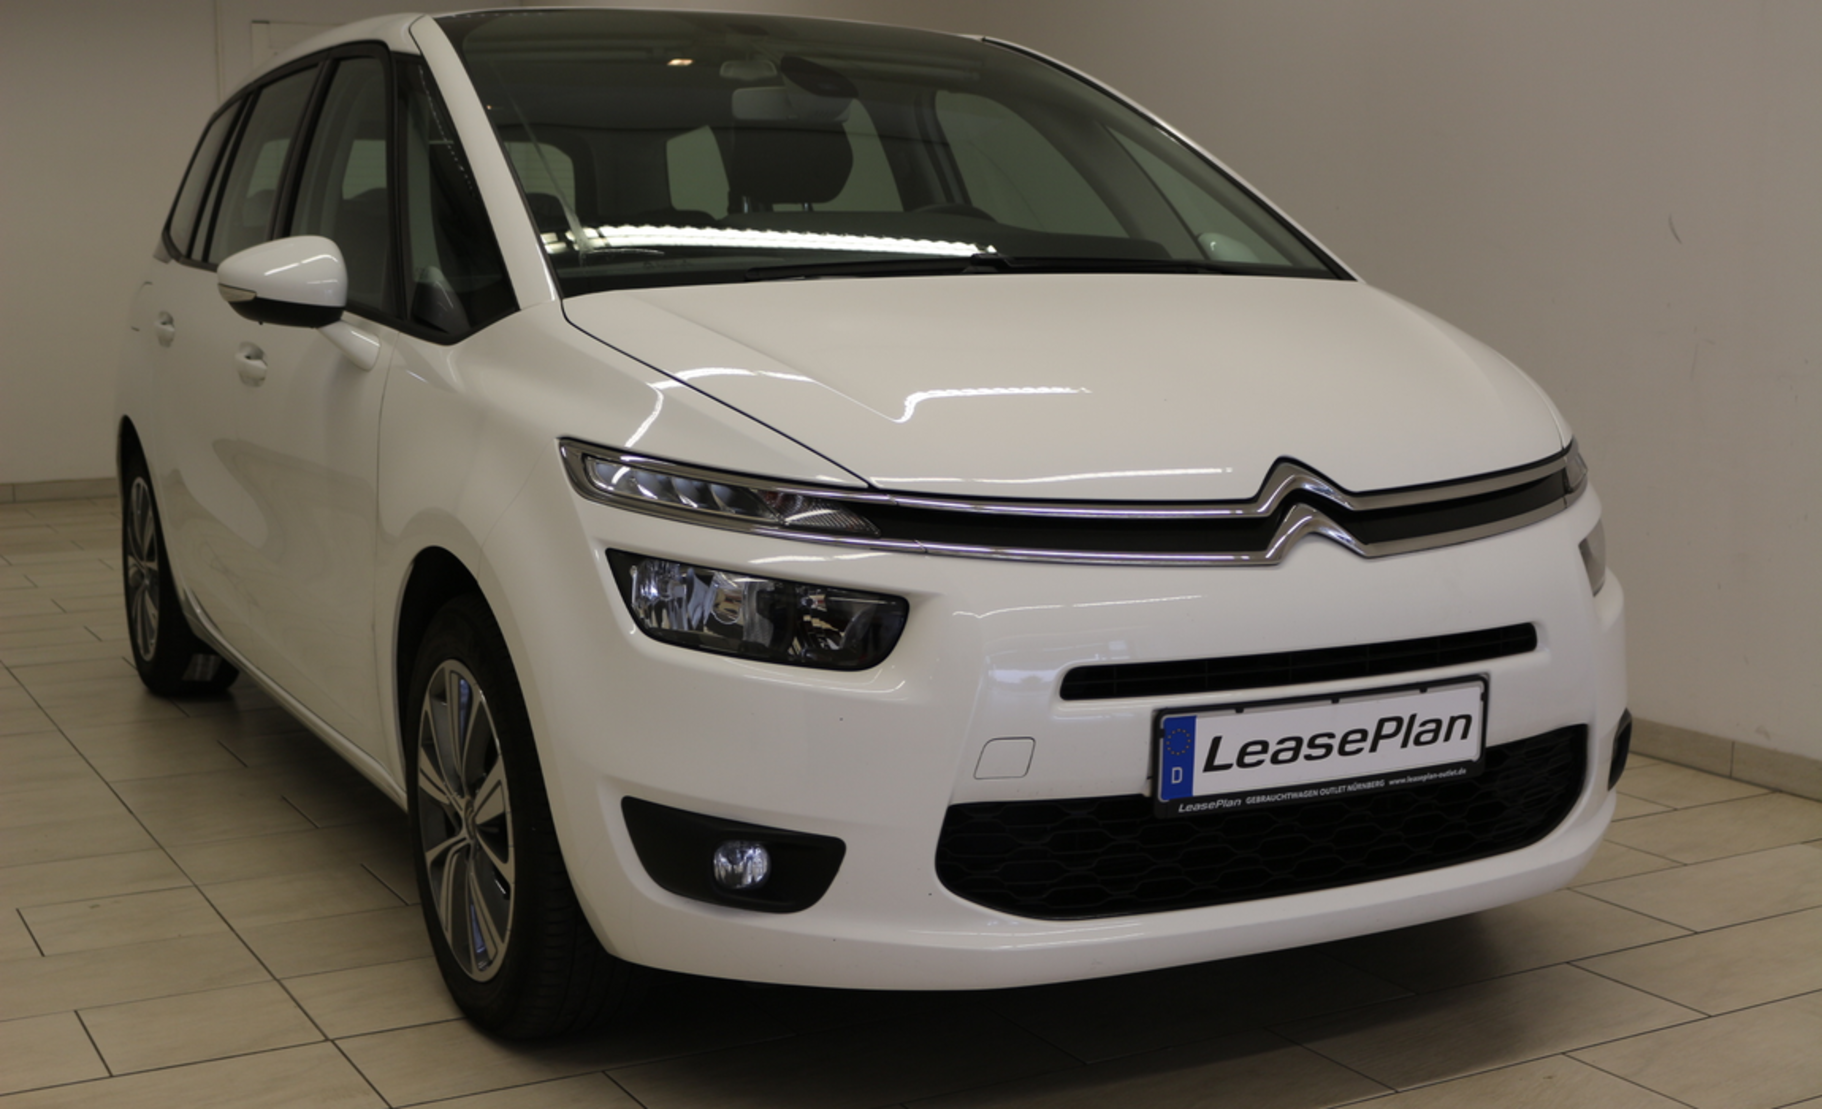 Citroën Grand C4 Picasso BlueHDi 150 EAT6 Business Class (572433) detail1